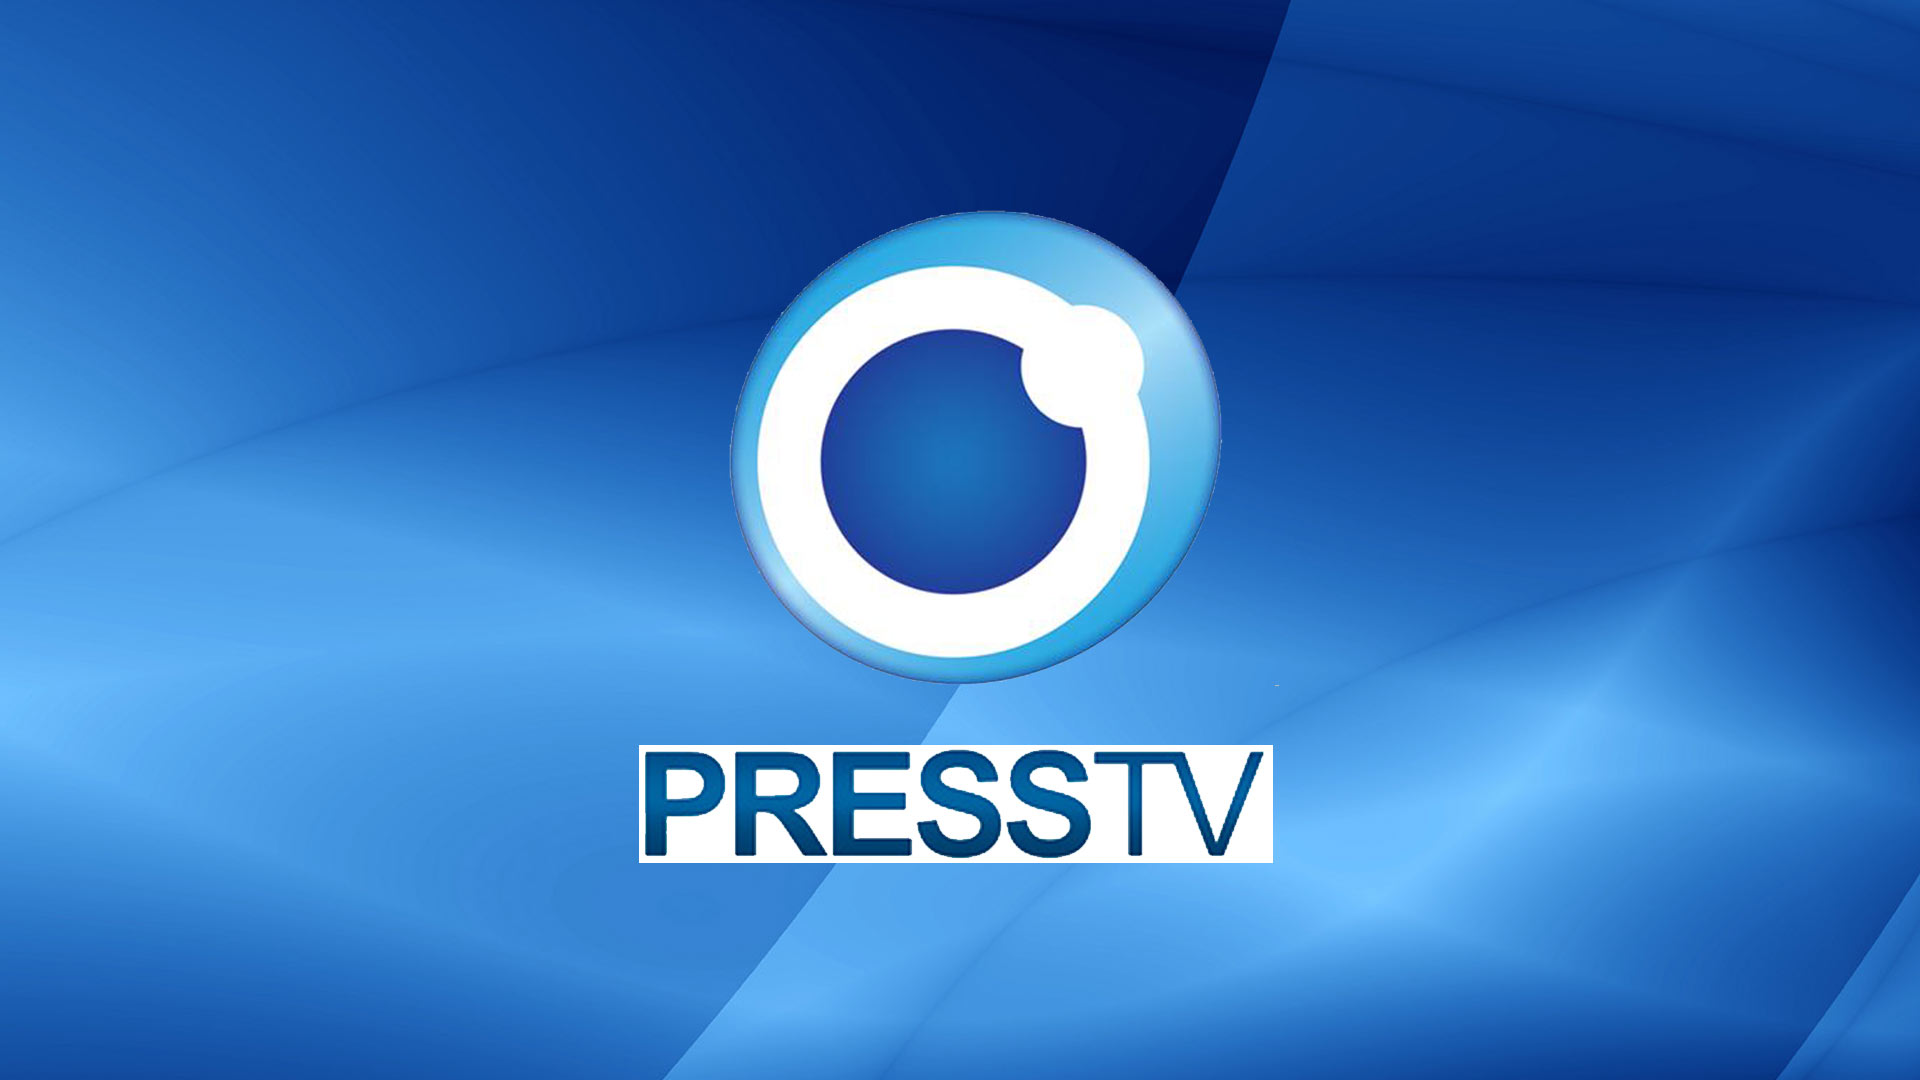 regarder press tv news en direct live 100 gratuit tv direct. Black Bedroom Furniture Sets. Home Design Ideas